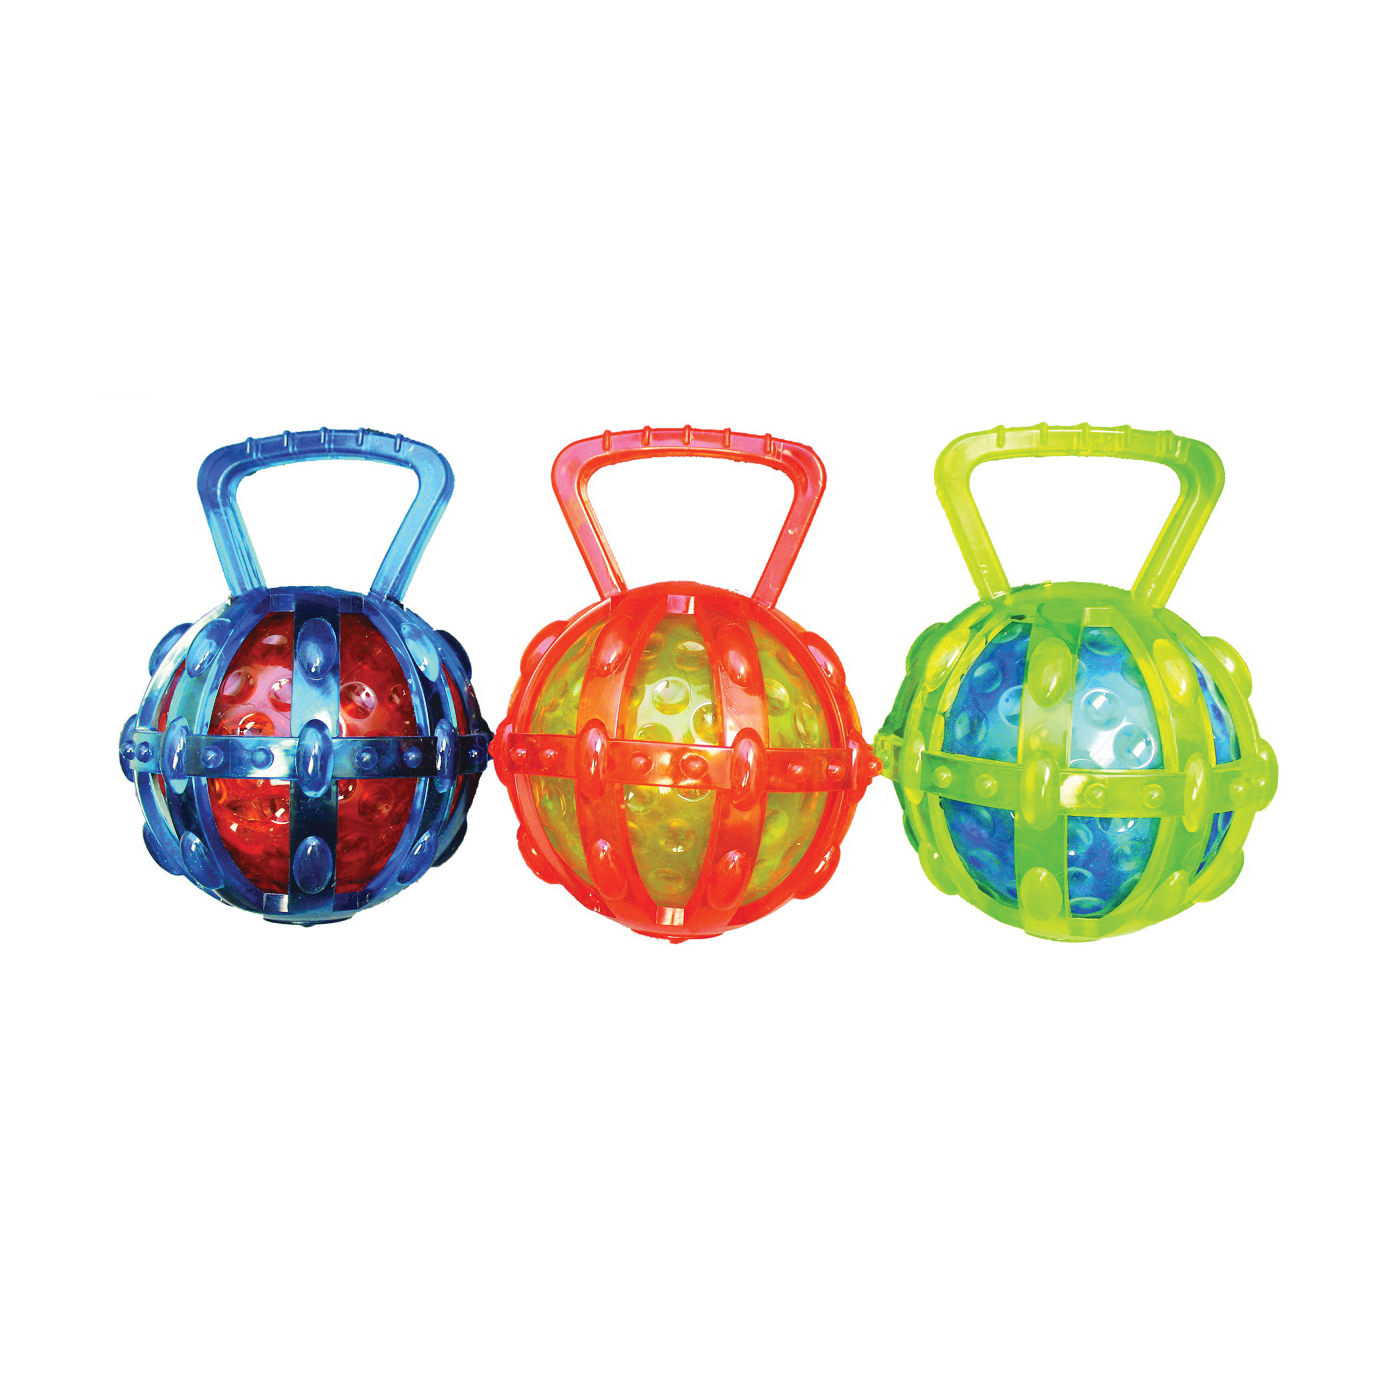 Picture of Chomper WB15519 Dog Toy, Cage, Thermoplastic Rubber